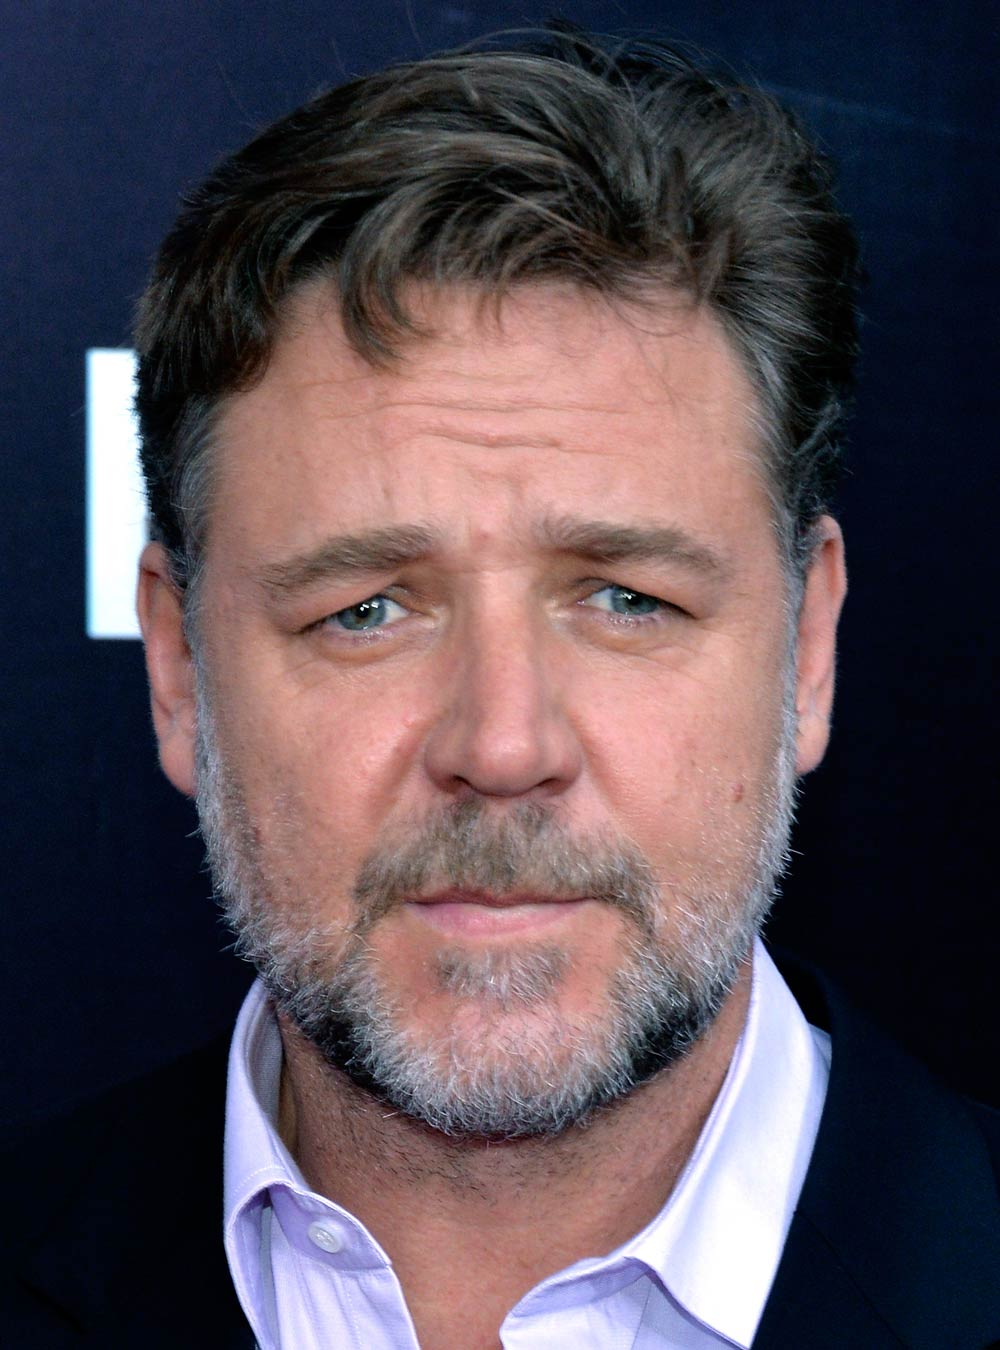 Hd Wallpaper Pack Russell Crowe 198937 Wallpapers High Quality Download Free